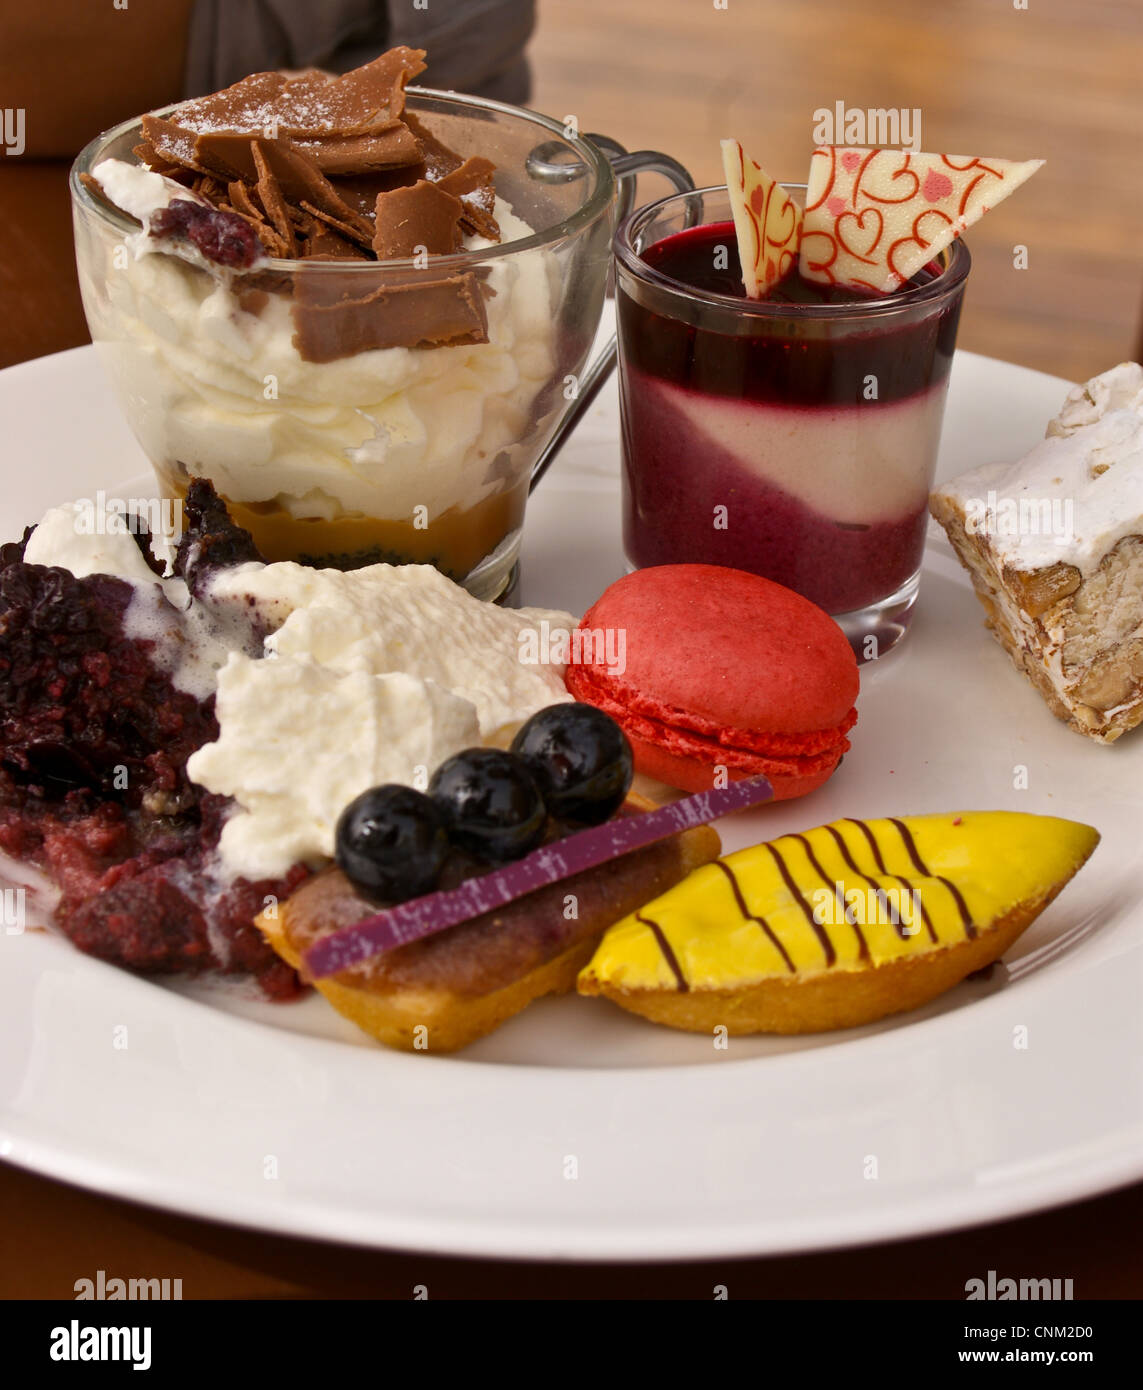 cakes-pastries-dessert-at-friday-brunch-